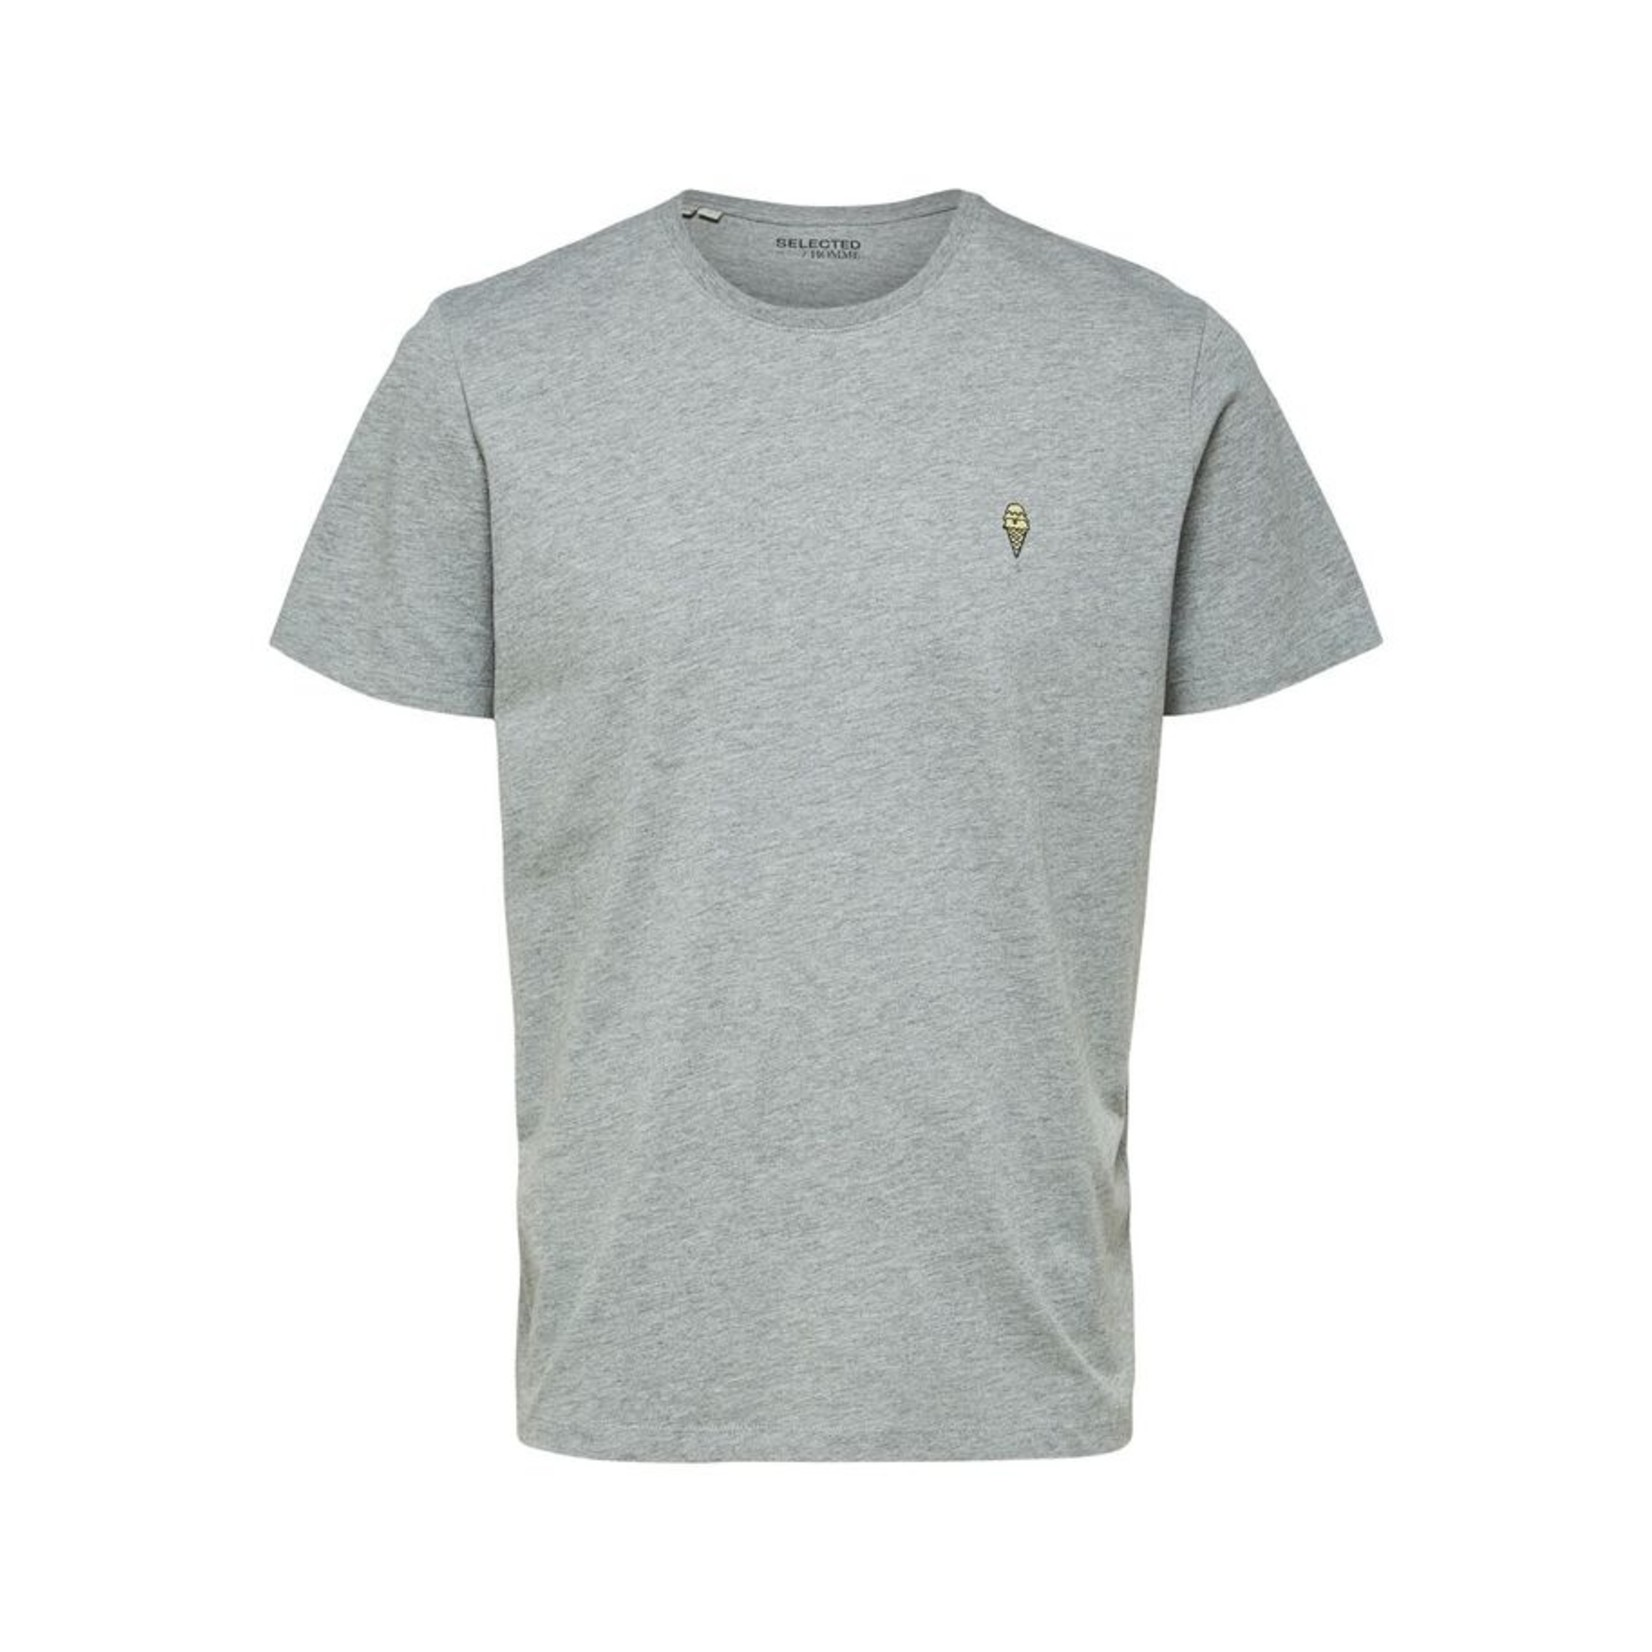 Selected Homme Selected Homme 16078260 Jude Tee - Grey